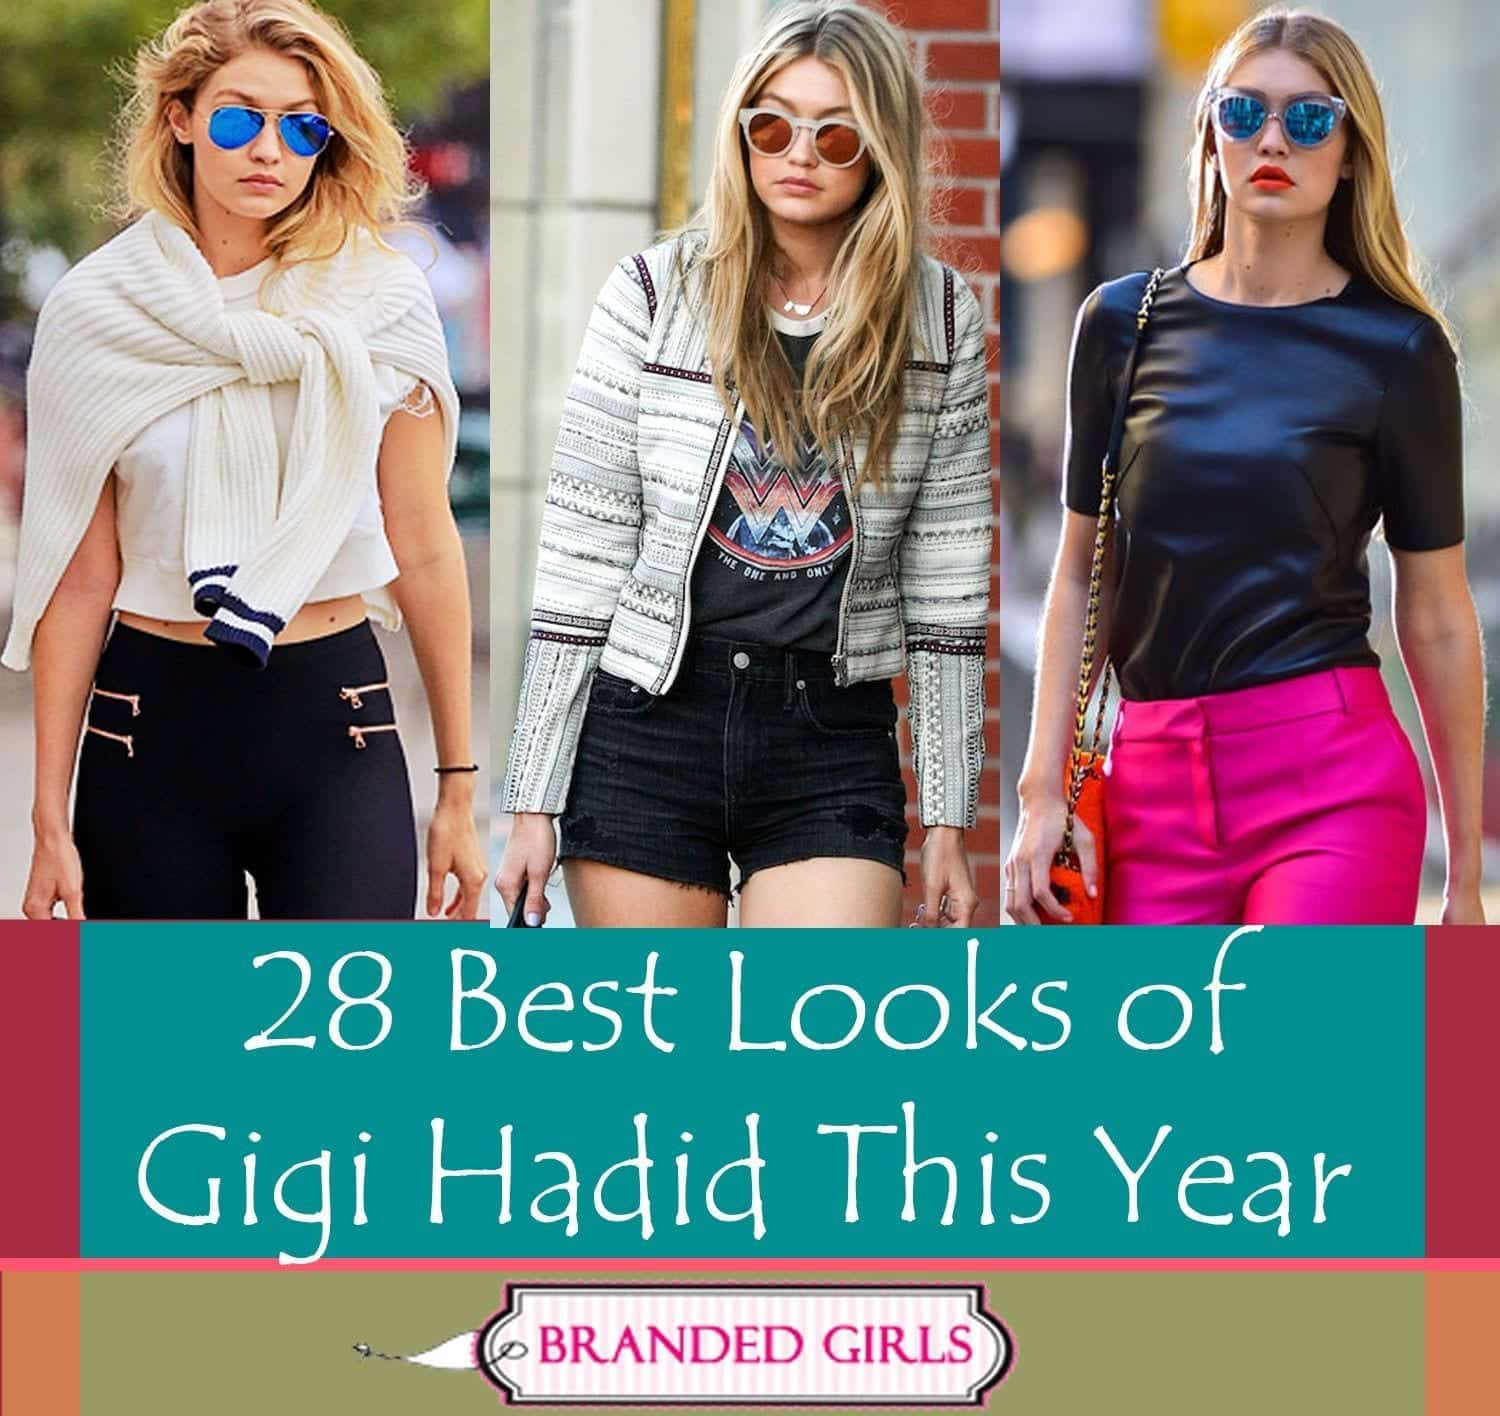 28 best looks of gigi hadid this year